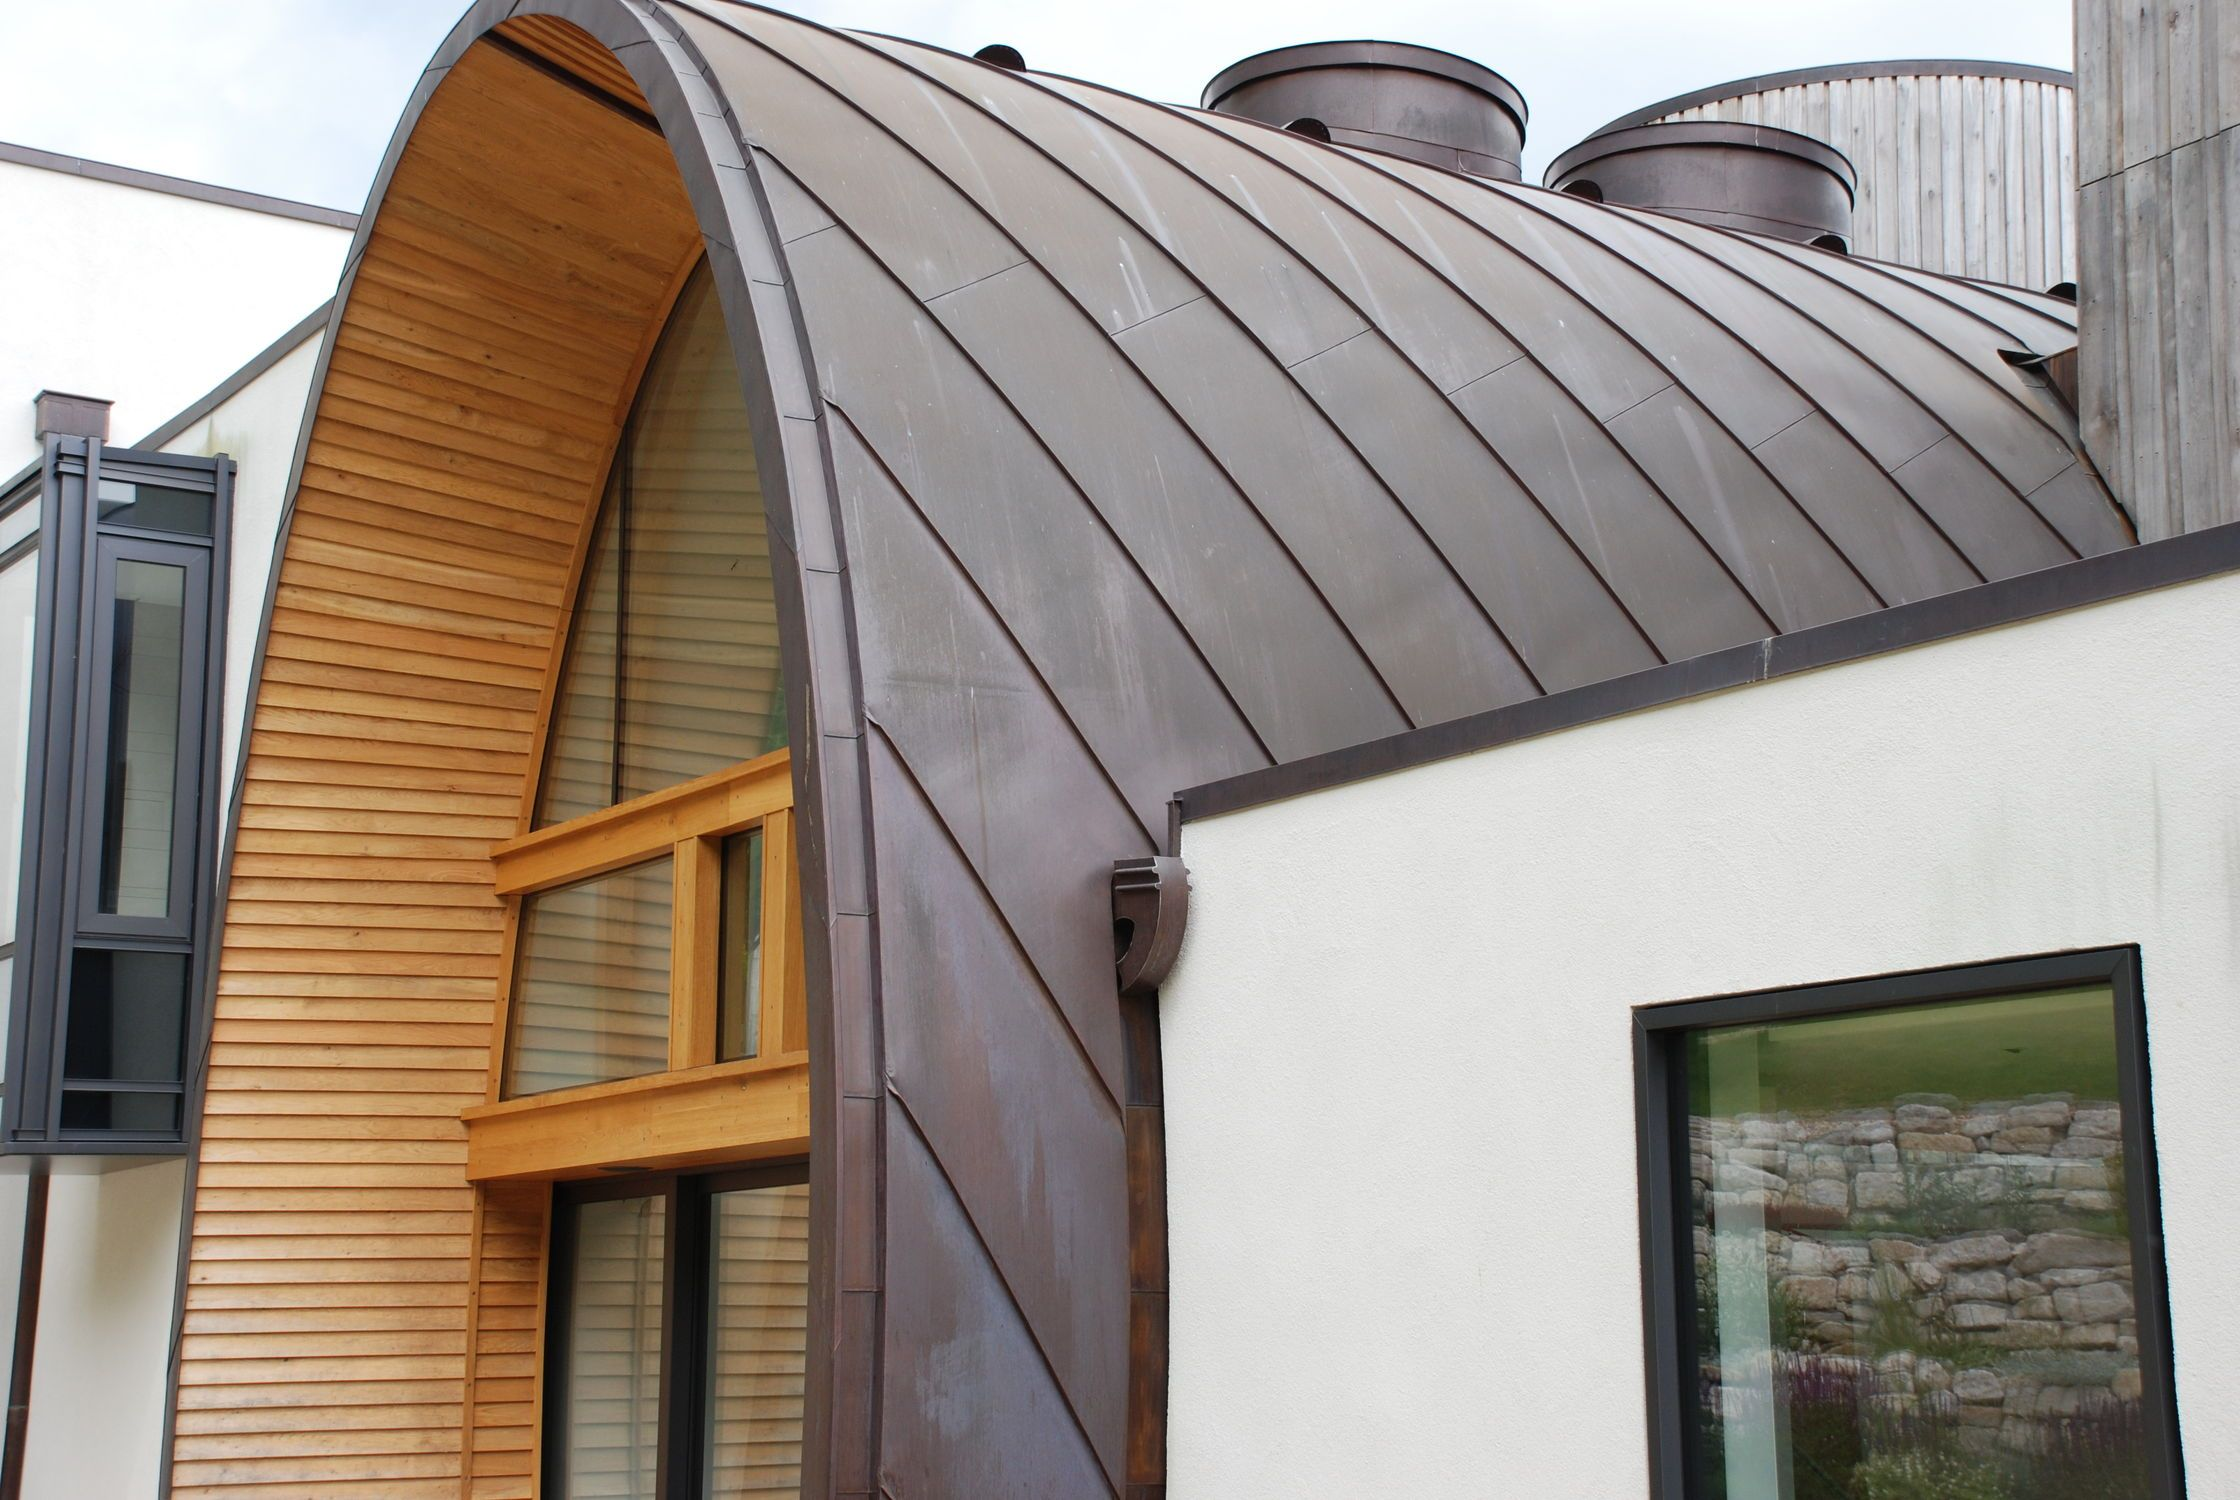 Zinc Roofing Upright Joint Downley House Peters Roofing Zinc Roof Copper Roof Roofing